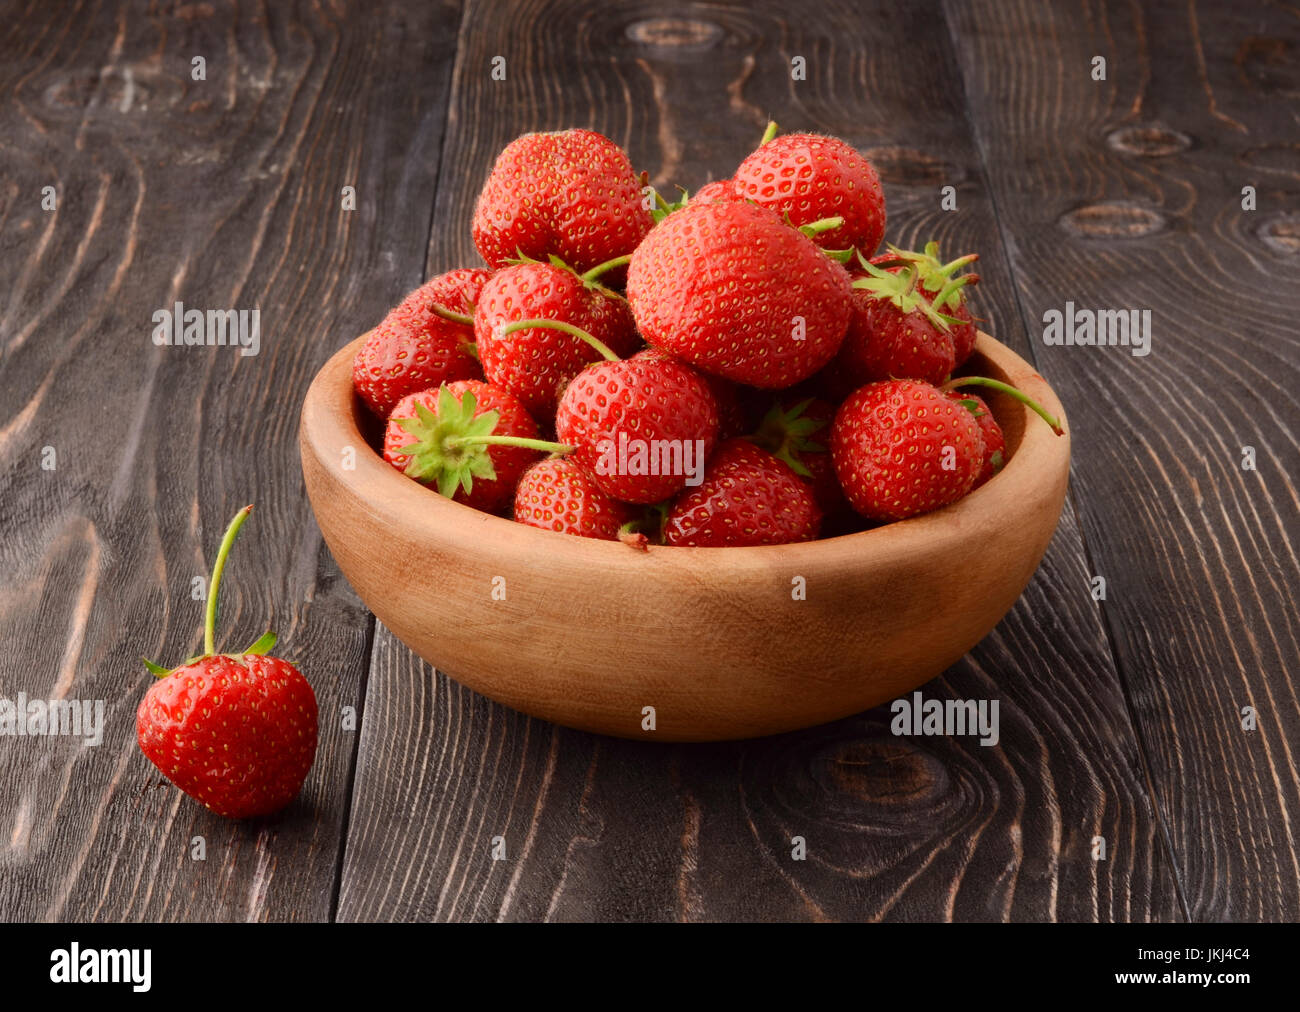 Ripe strawberries in wooden bowl and green leaves on old table, top view - Stock Image